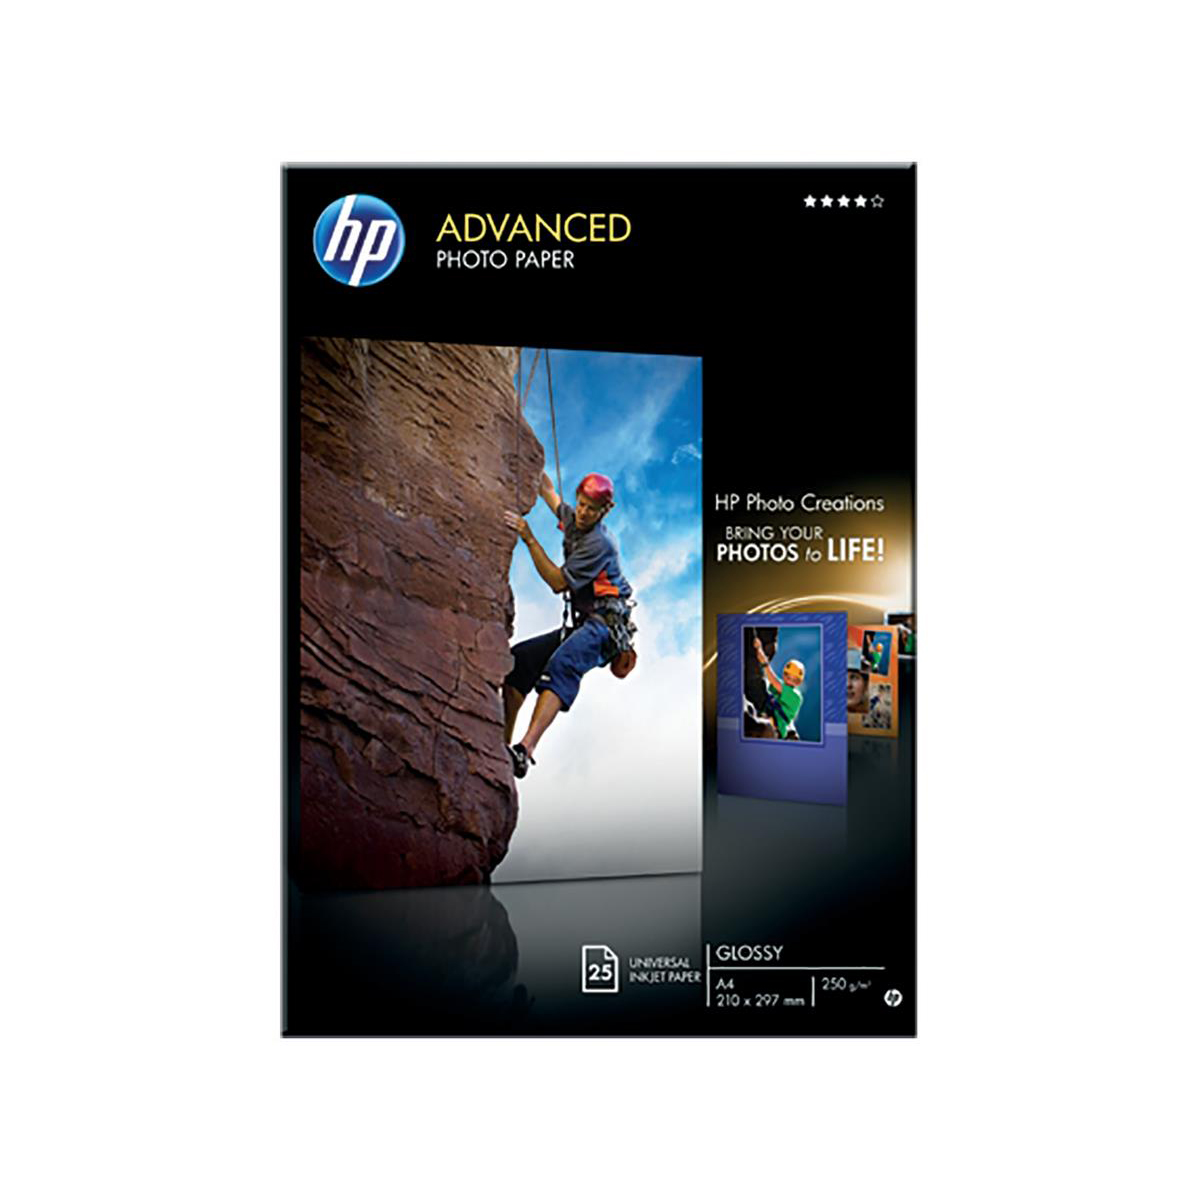 Hewlett Packard [HP} Advanced Photo Paper Glossy 250gsm A4 Ref Q5456A [25 Sheets]